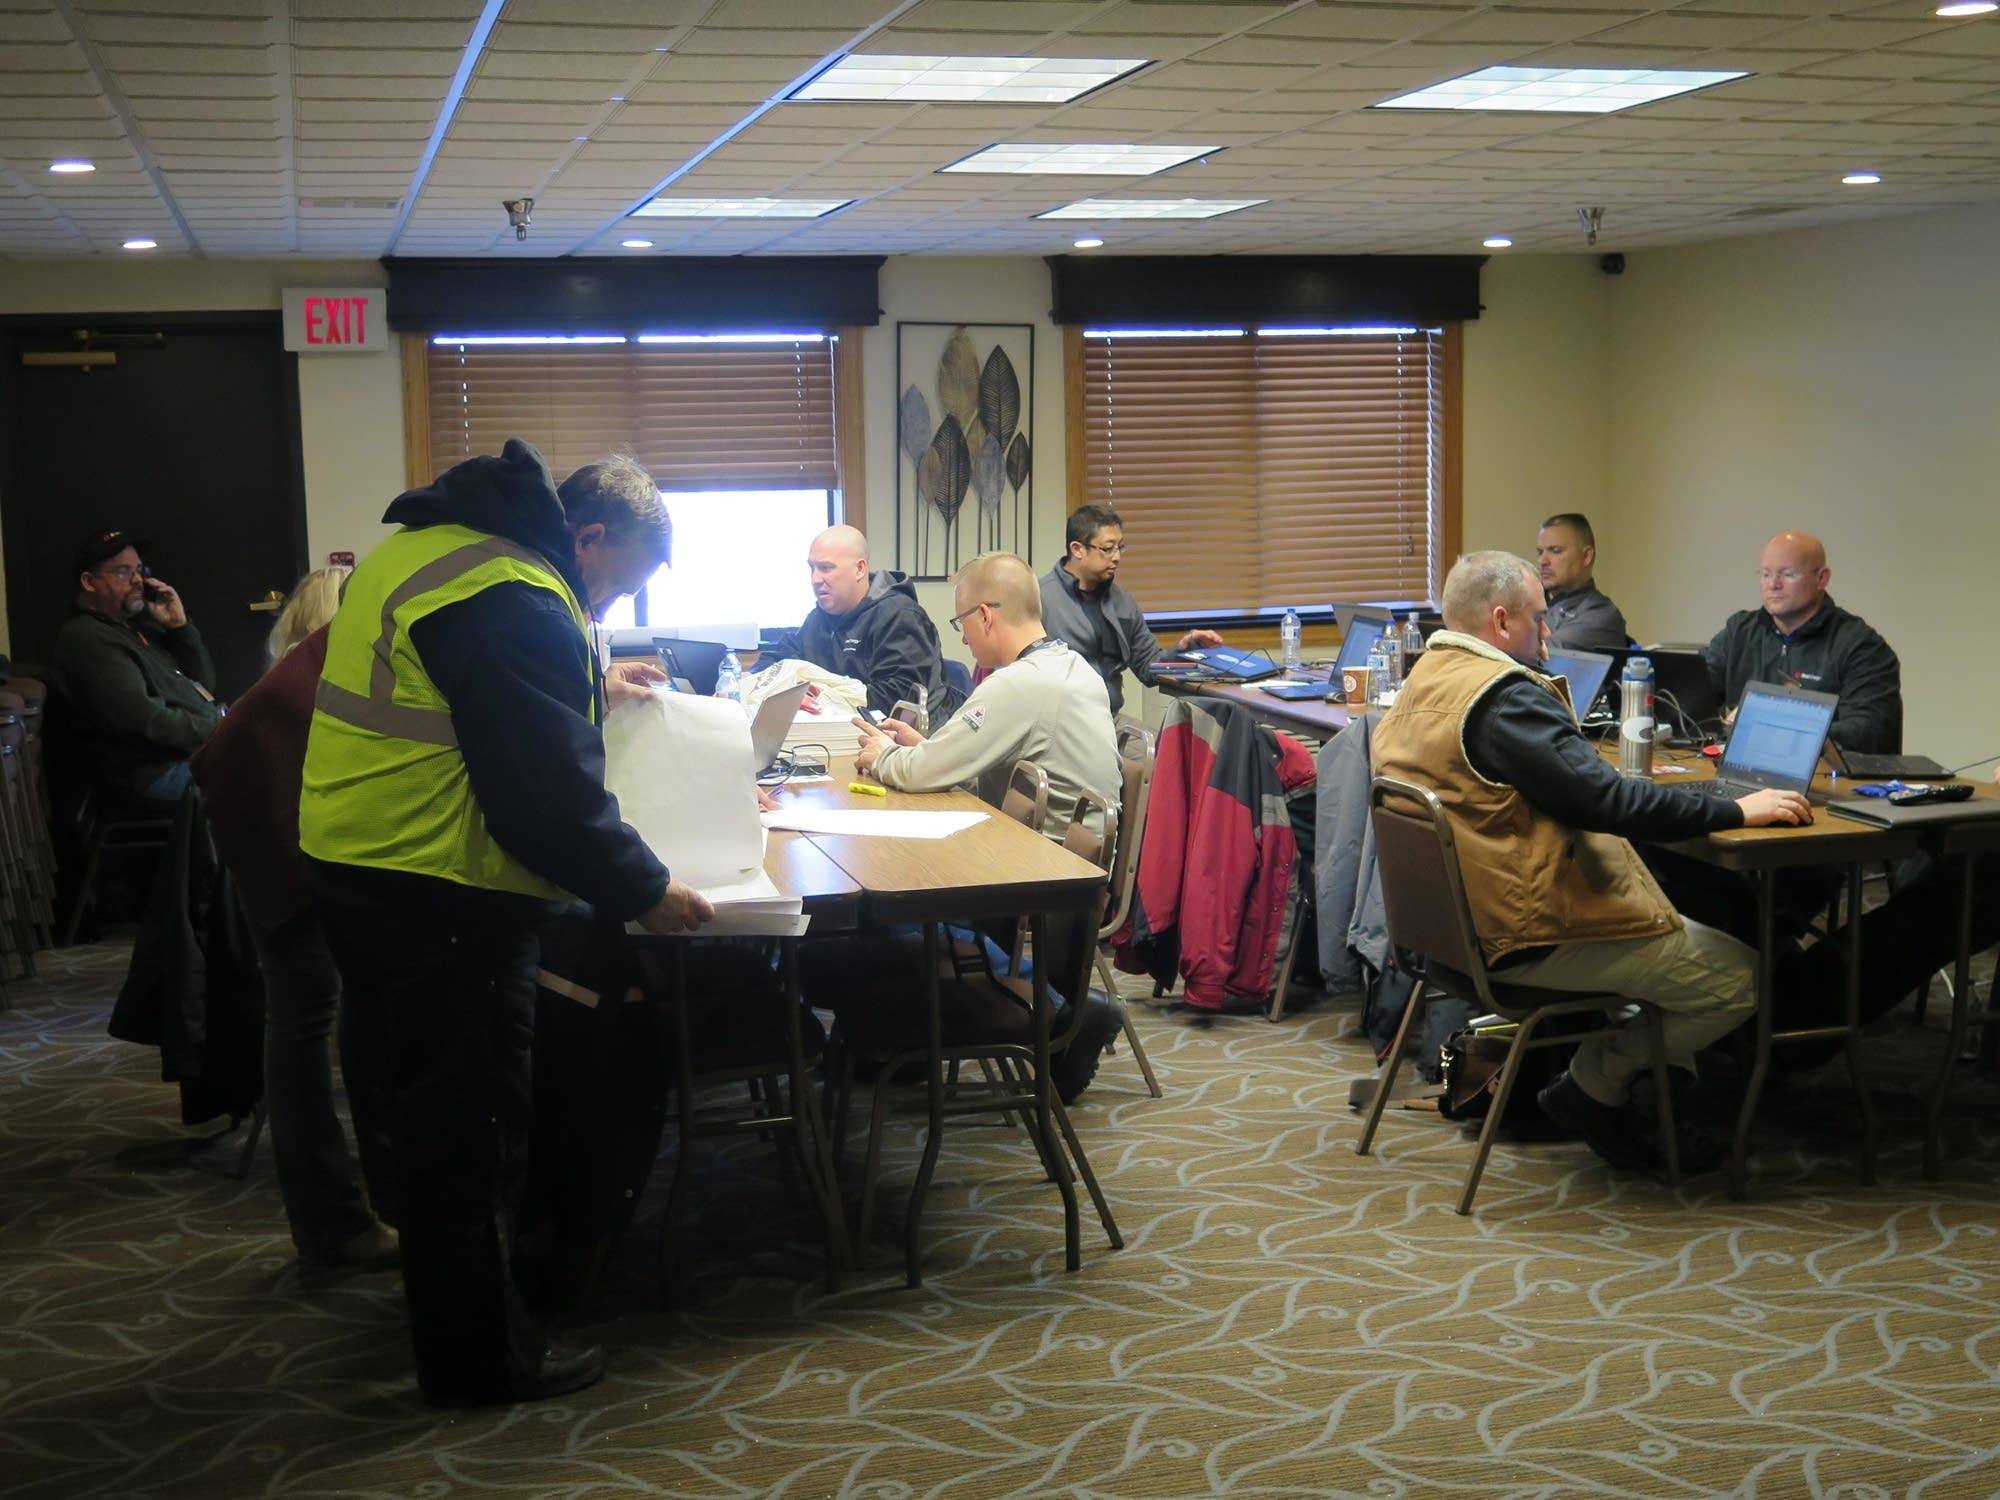 Employees work out of a conference room at the AmericInn.